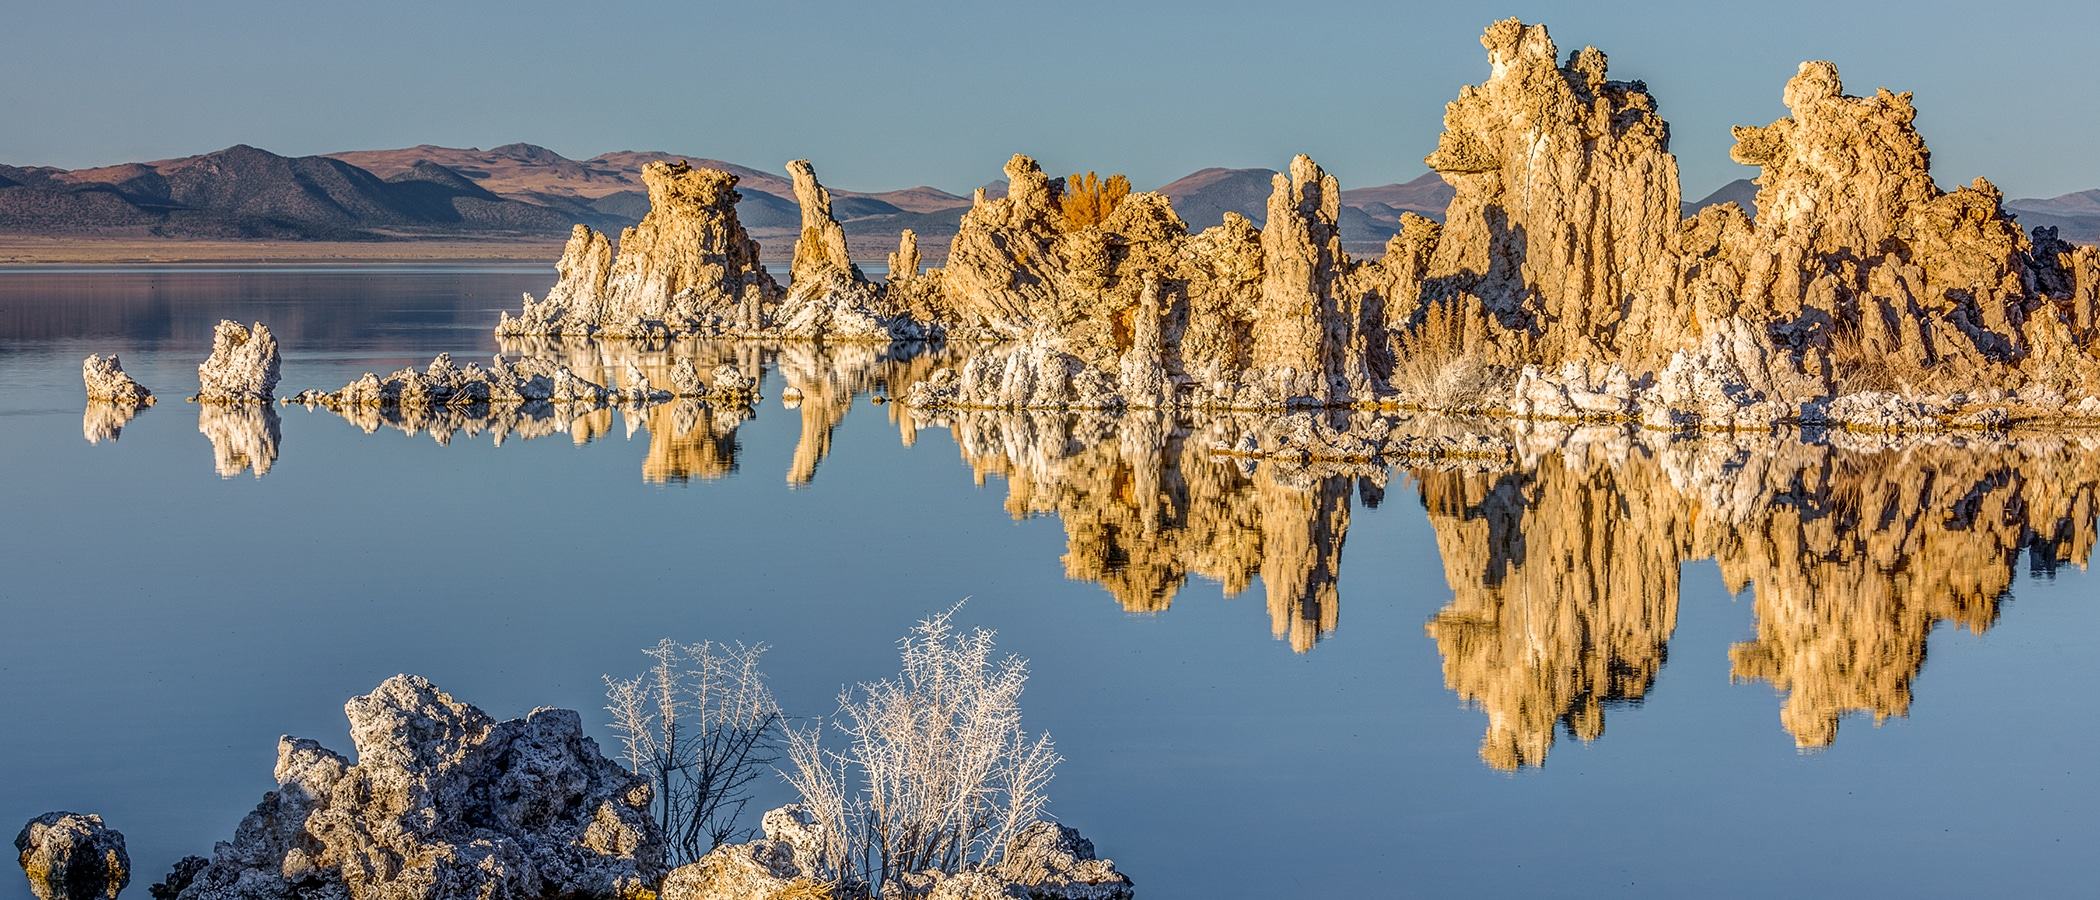 Brightly lit tufa towers reflecting in a perfectly glassy Mono Lake.